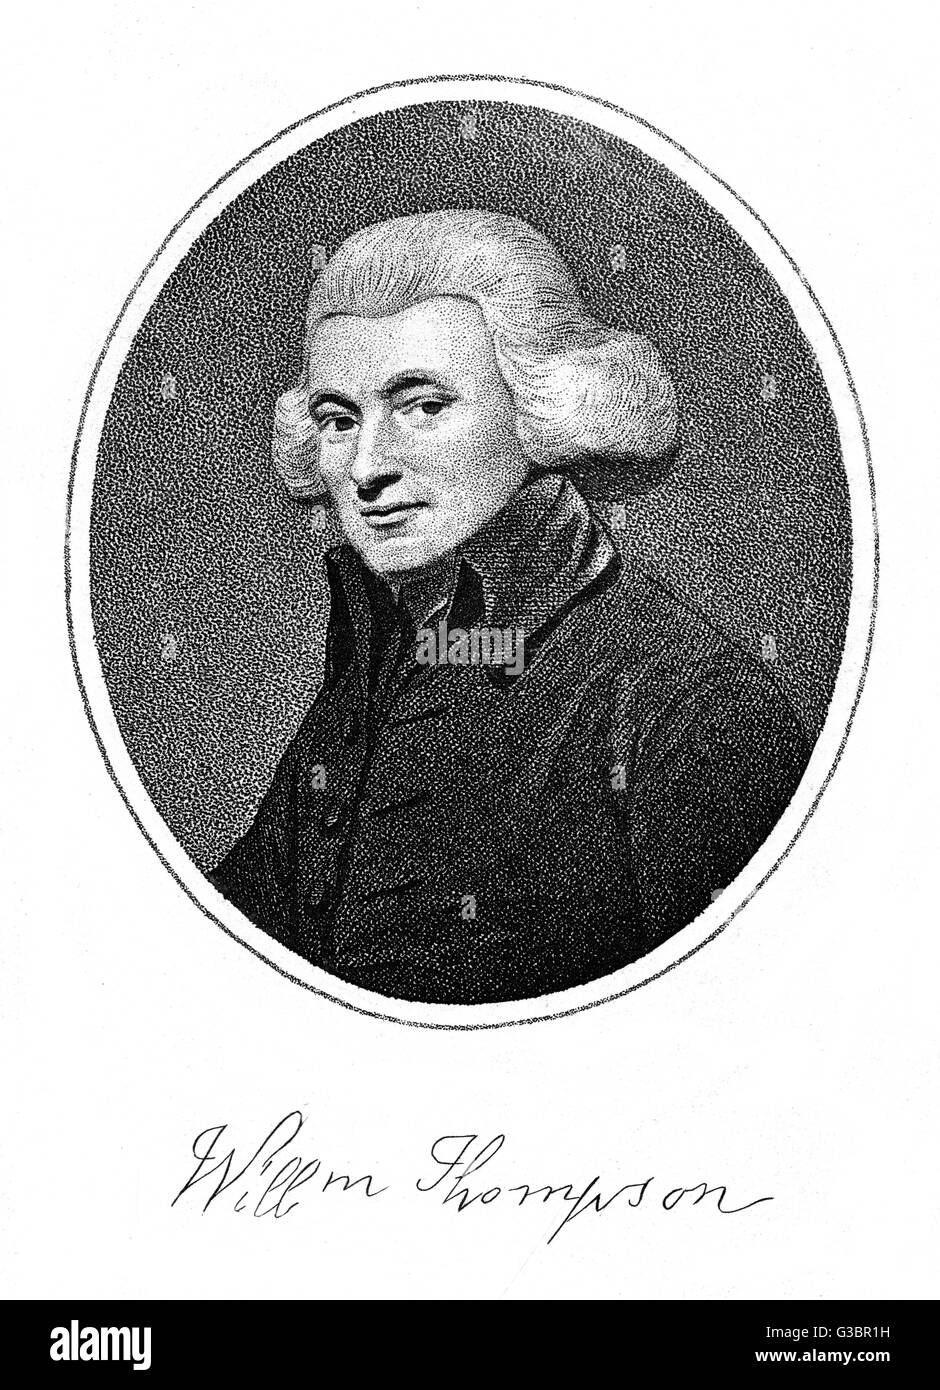 WILLIAM THOMPSON Methodist churchman  with his autograph       Date: 1733 - 1799 - Stock Image